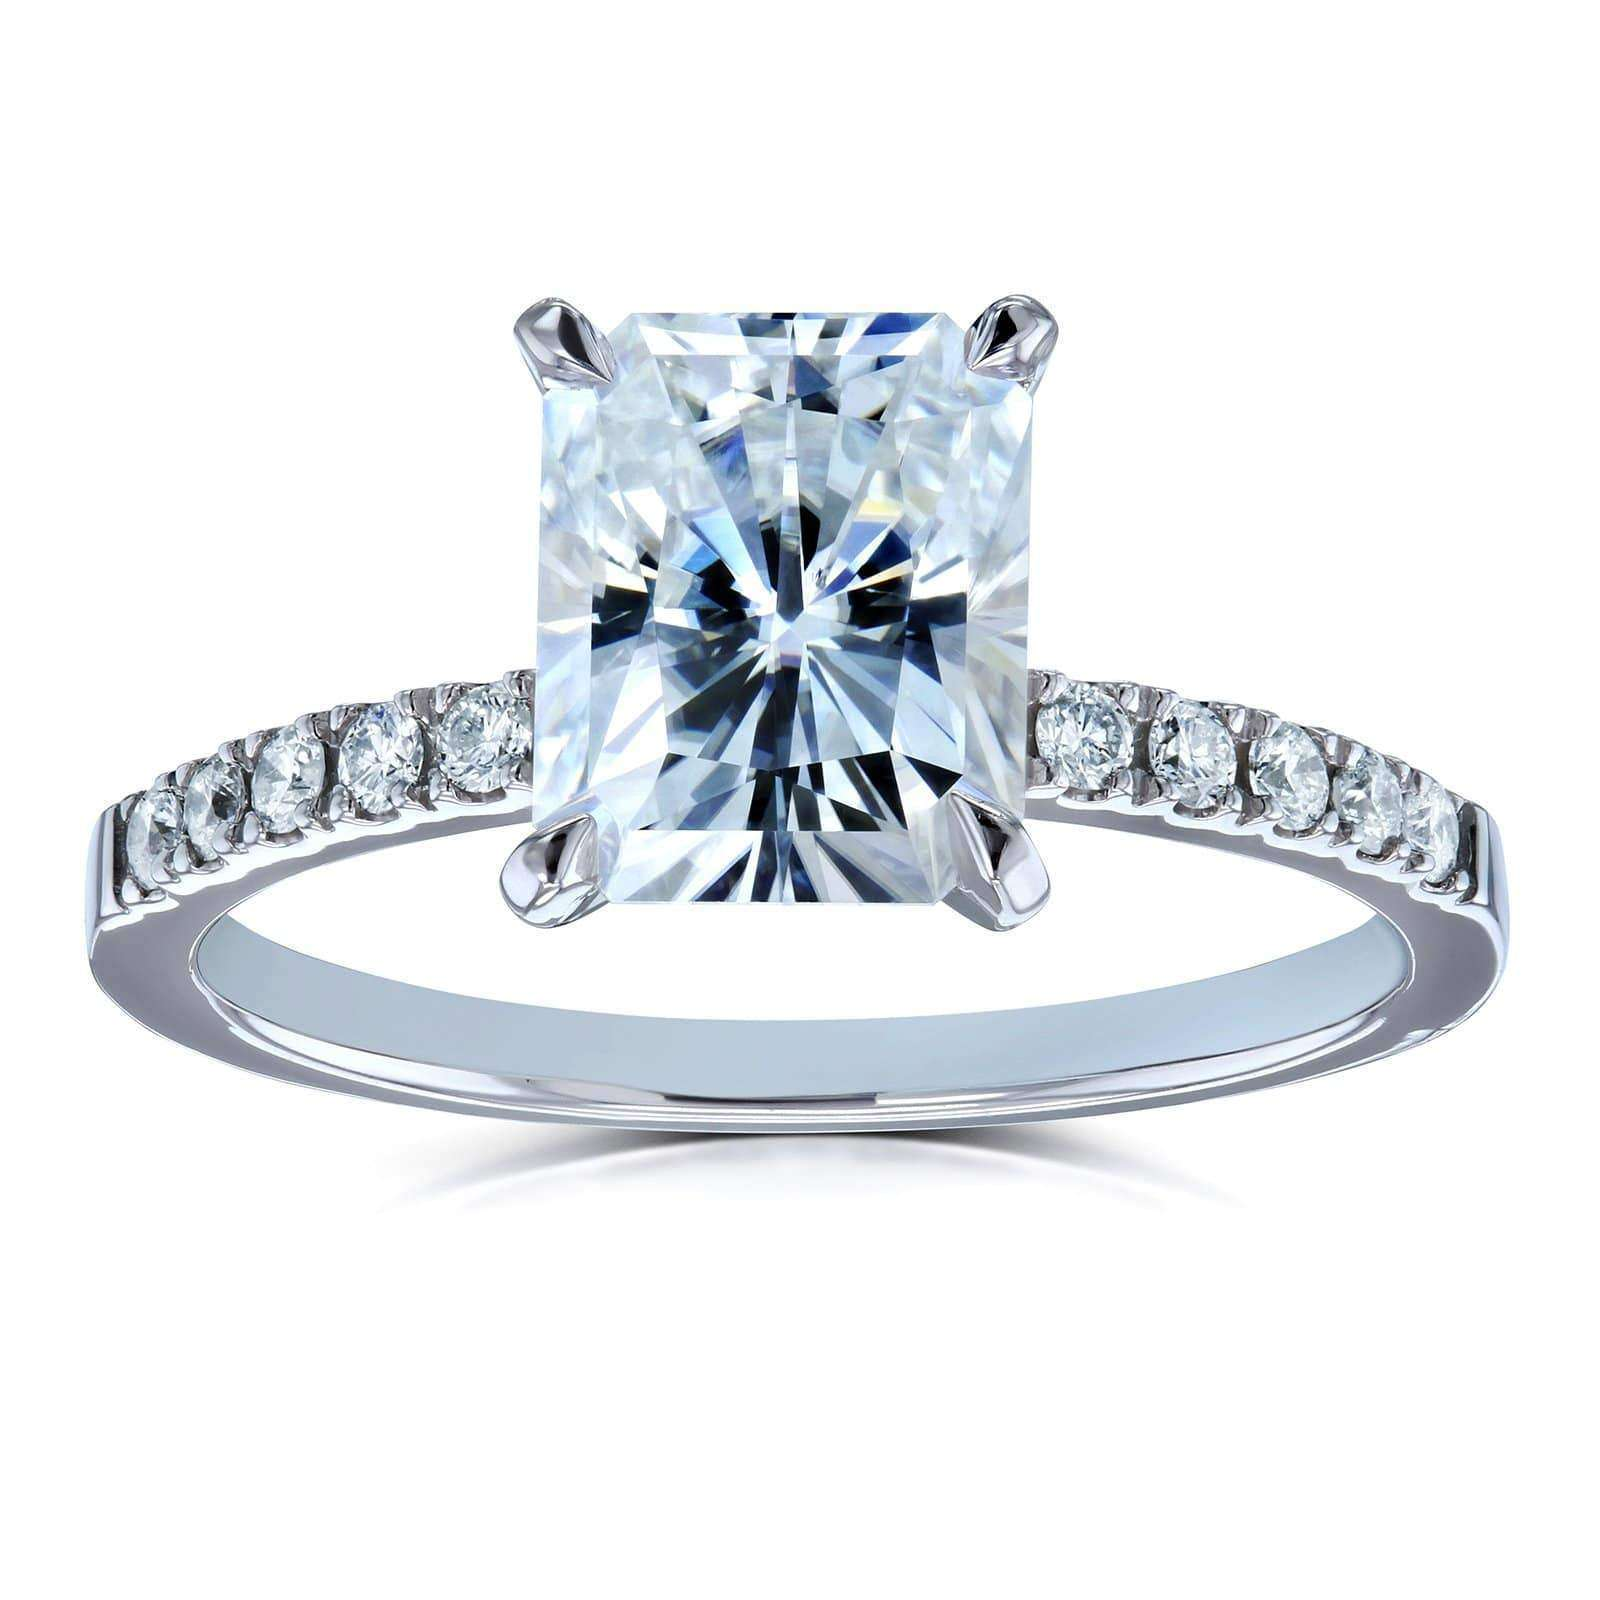 Engagement Rings Vs Wedding Bands: Radiant-cut Moissanite And Diamond Engagement Ring 3 CTW